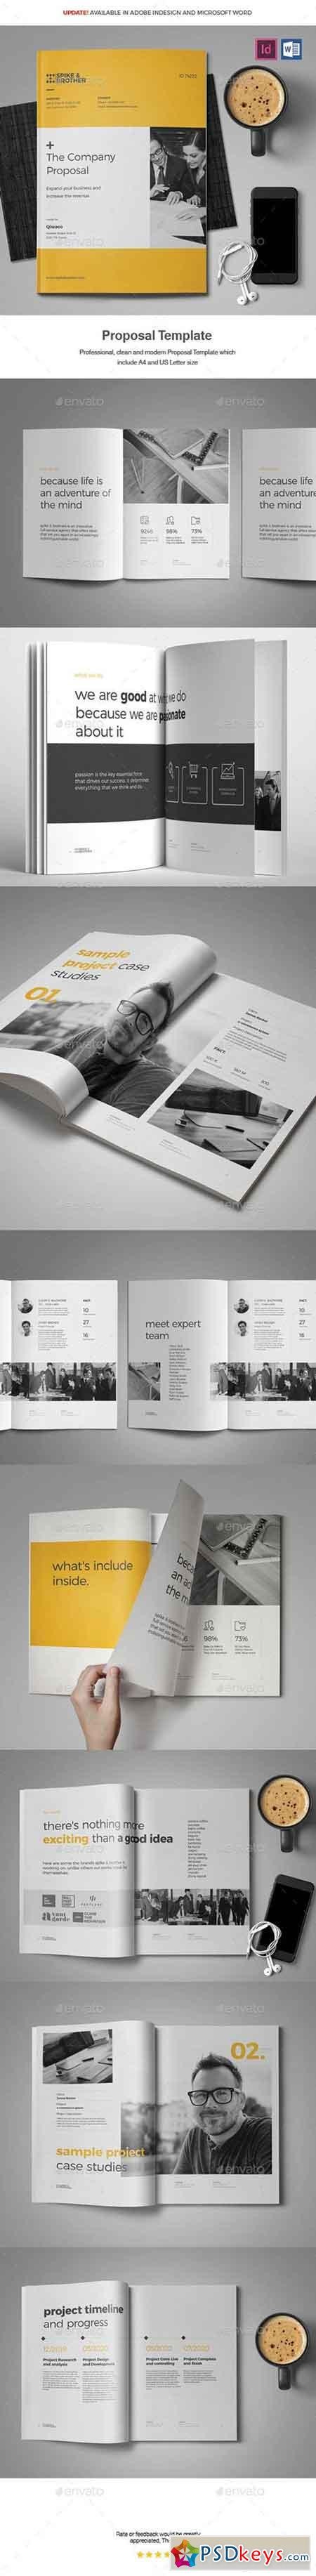 Web Design Proposal 18122617